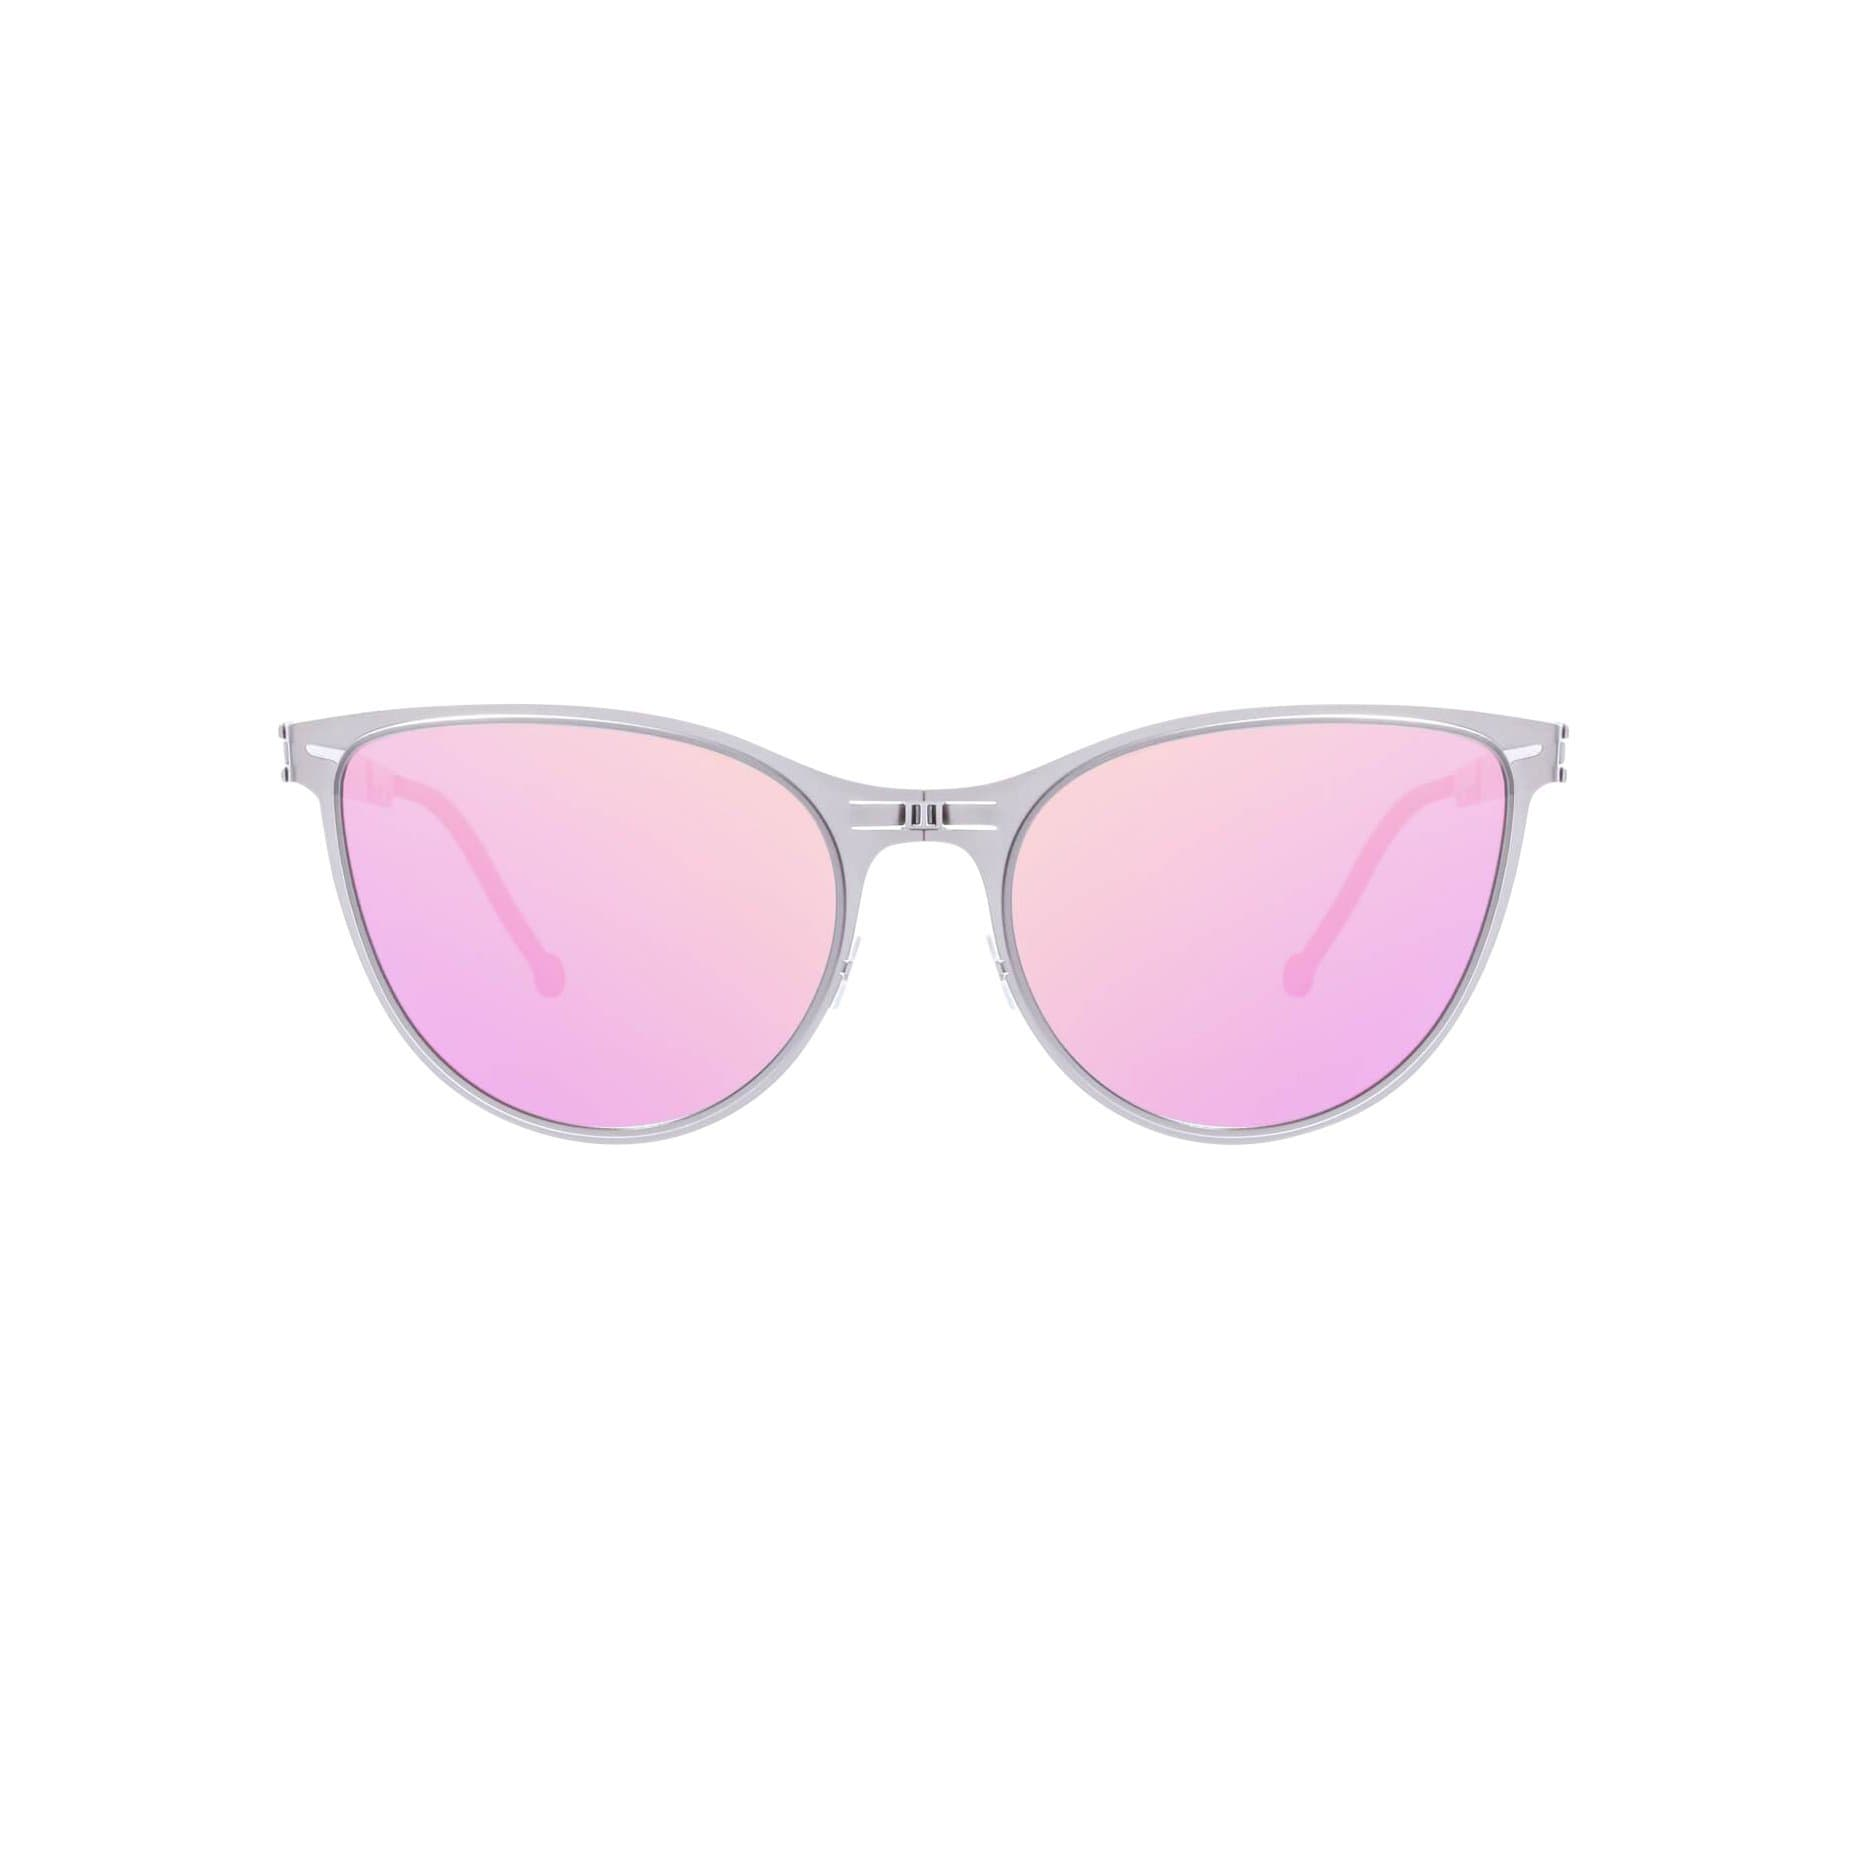 ROAV Eyewear Sunglasses + Eyewear Scarlett-Steel-Grapefruit